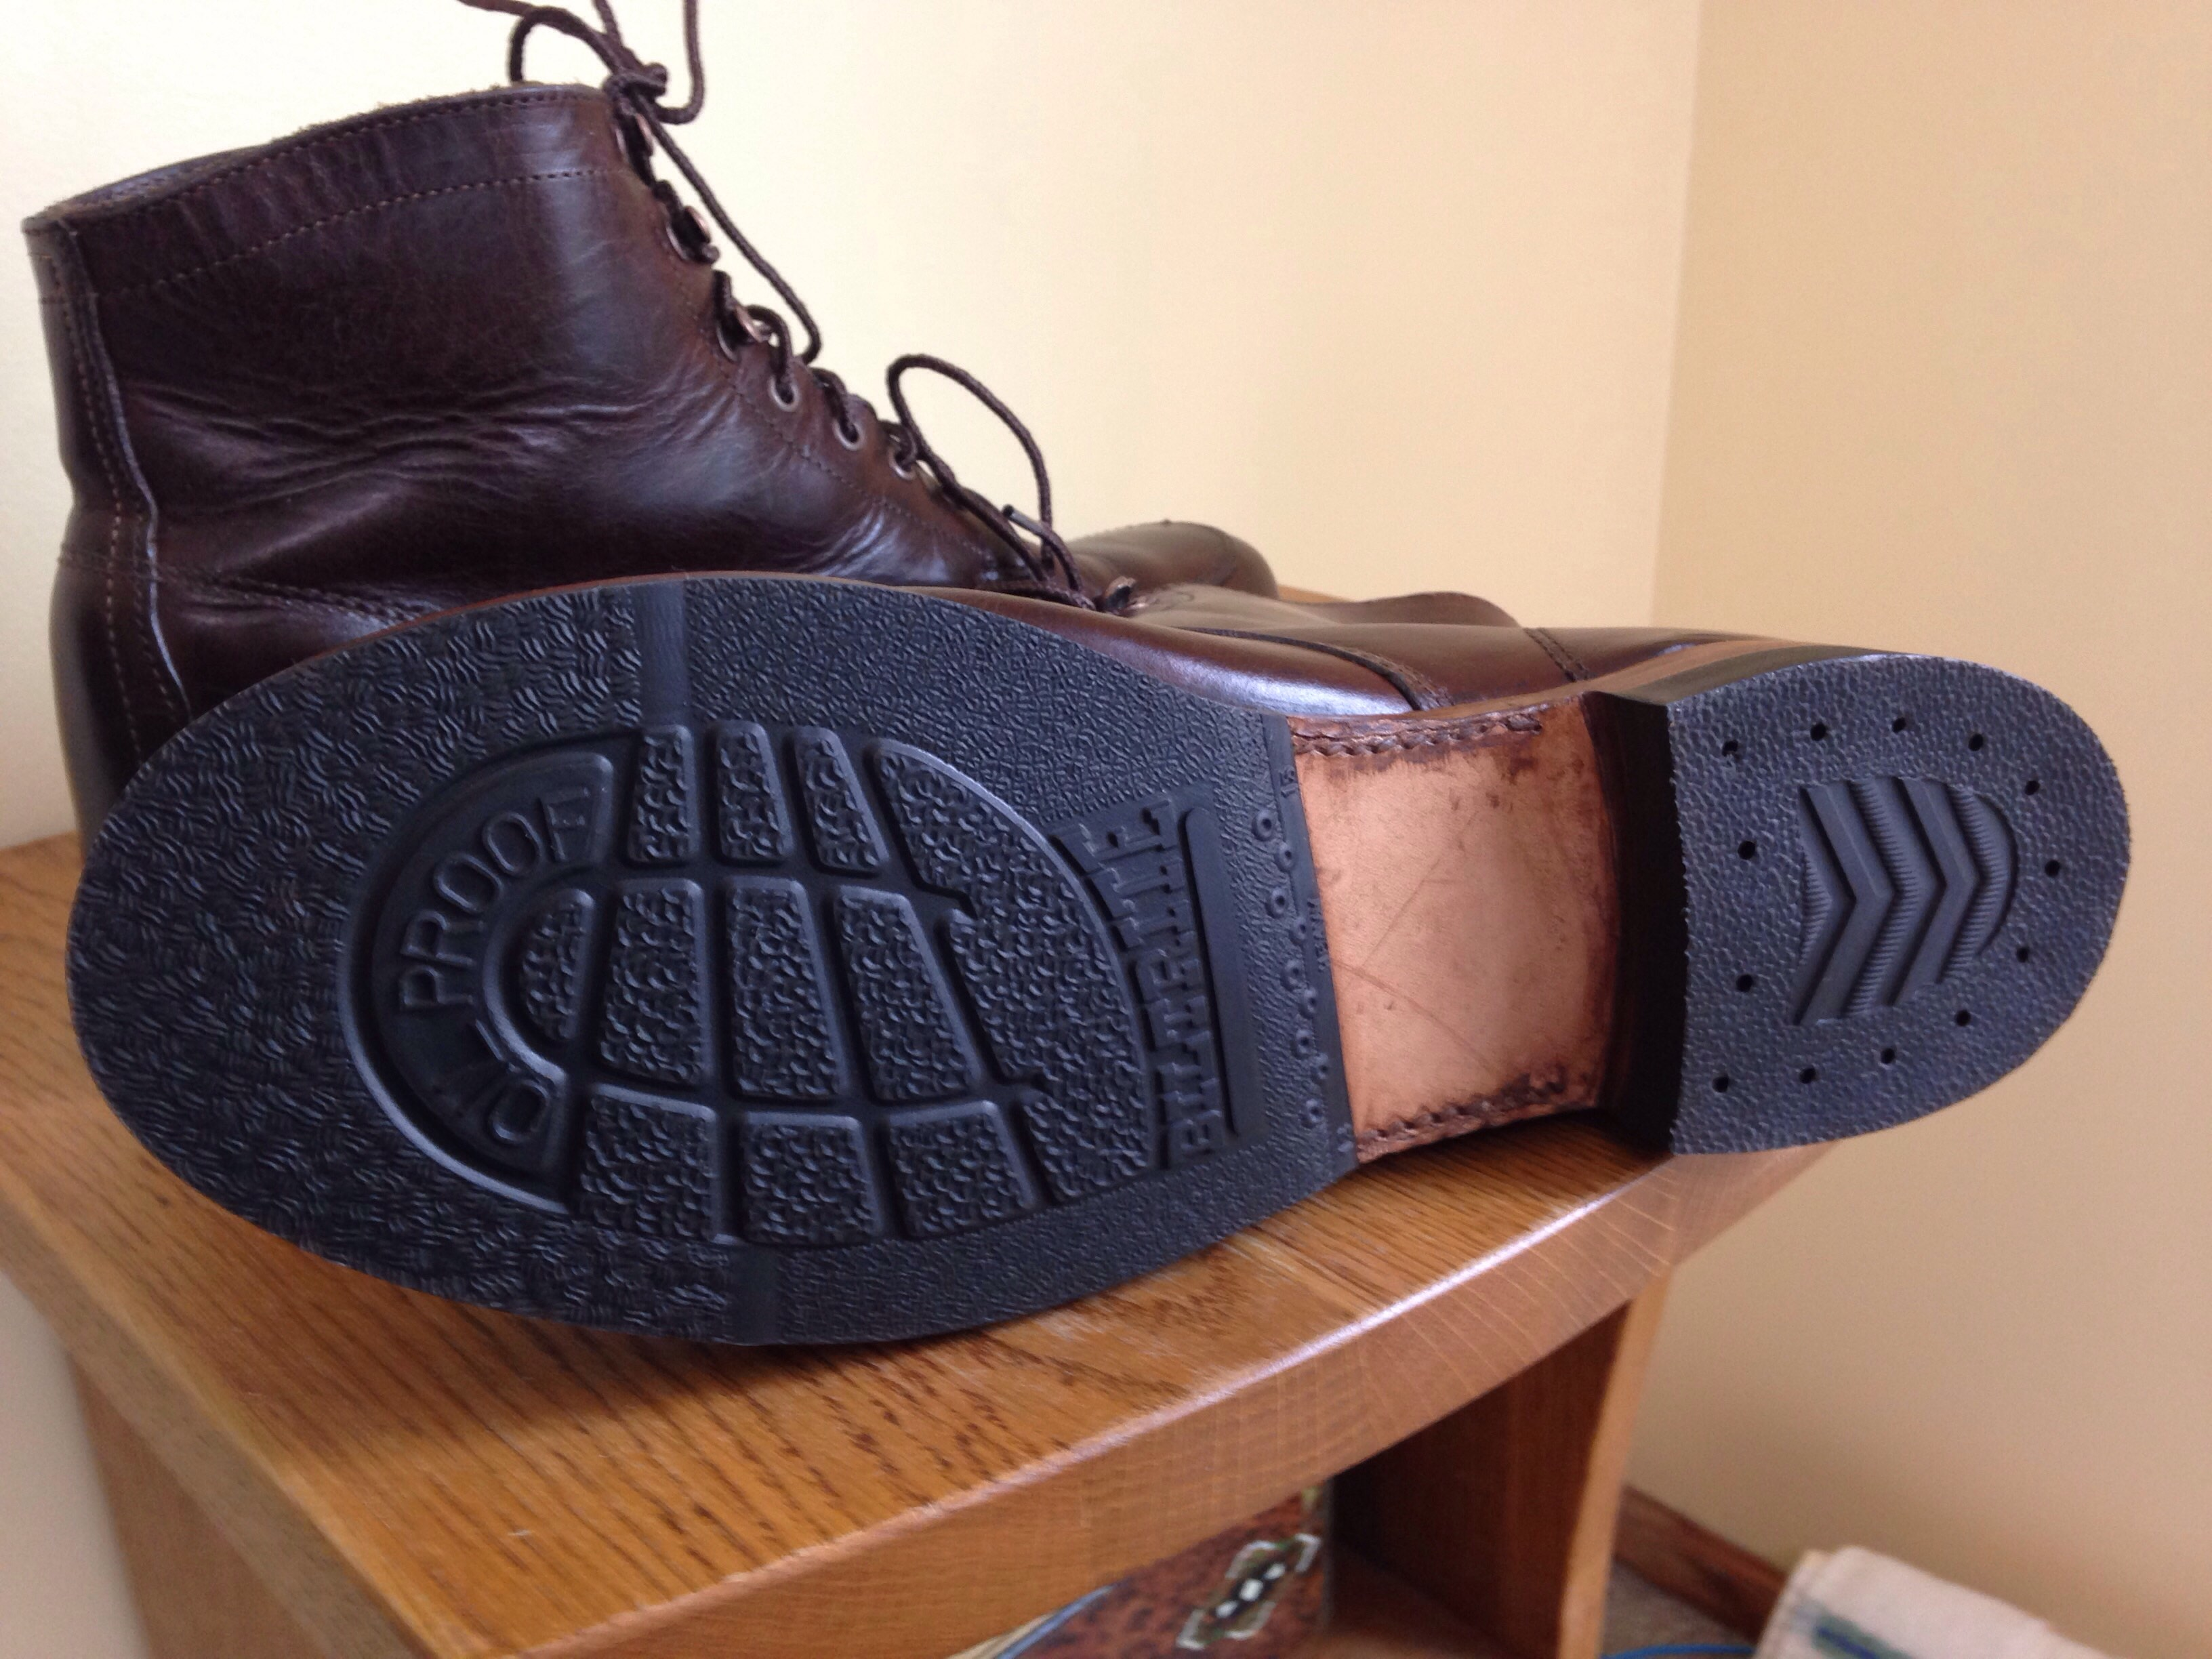 Wolverine 1000 Mile Boots Resole Recomendations The